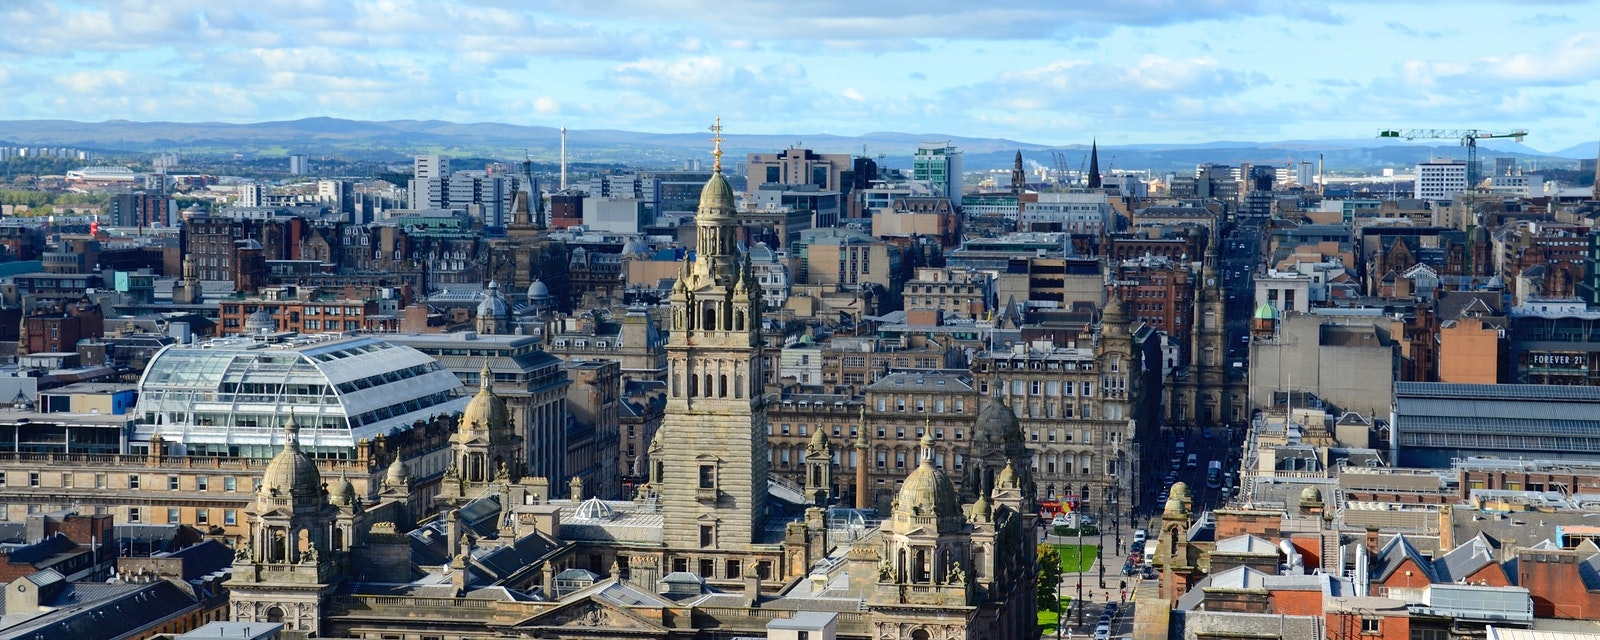 The,Glasgow,Skyline,Looking,Towards,George,Square,And,The,City